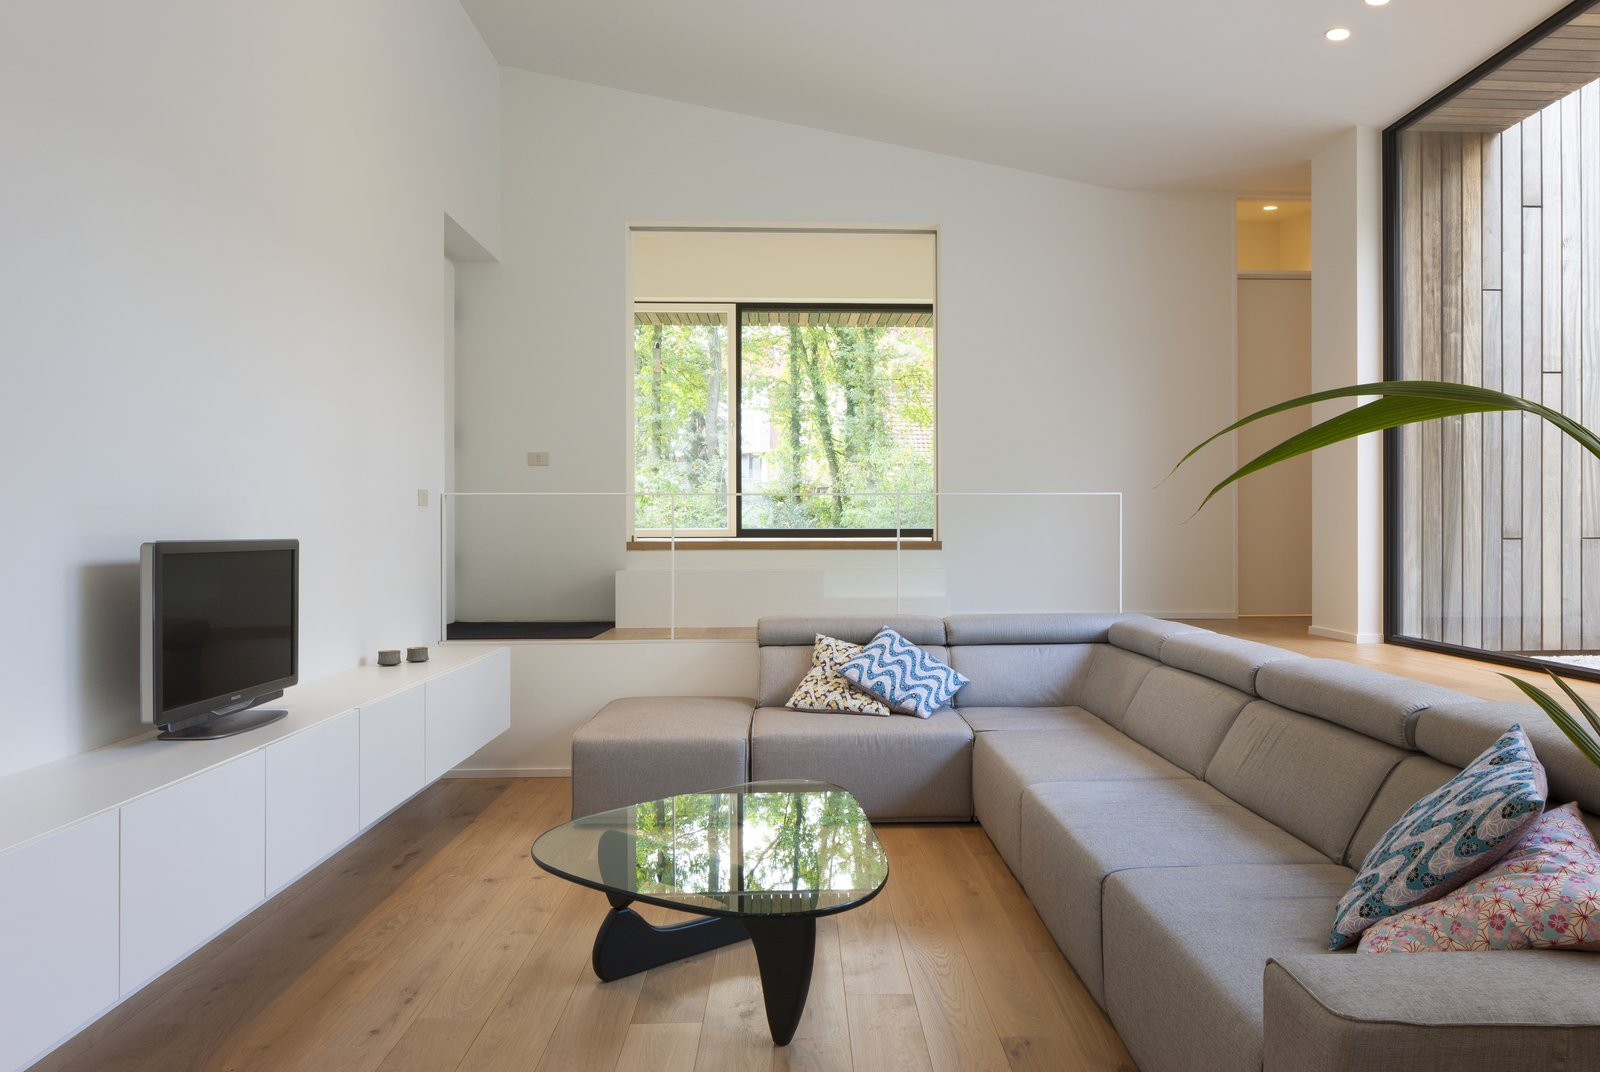 Photo 1 Of 63 In Herman Miller Noguchi Table From A Belgian Architect S Courtyard House Offers Work Life Balance Dwell